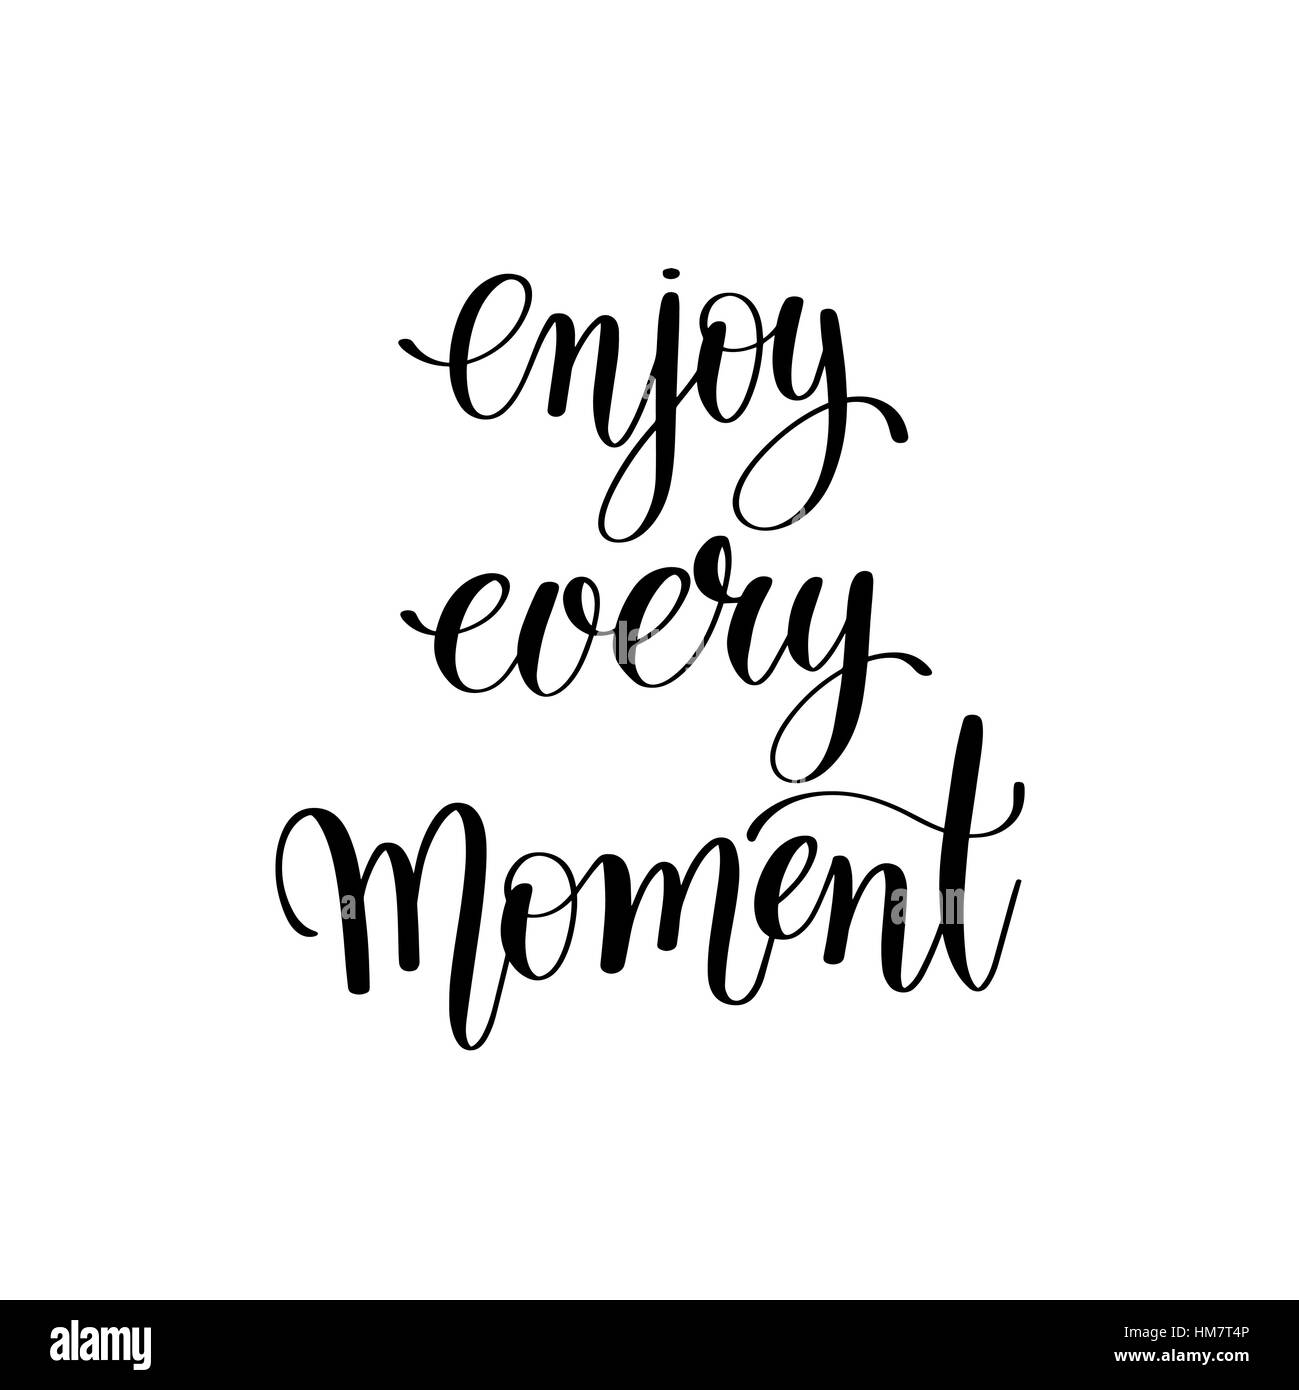 enjoy every moment stock photos enjoy every moment stock images MoMA Si Dian black and white handwriting lettering inscription enjoy every mo stock image